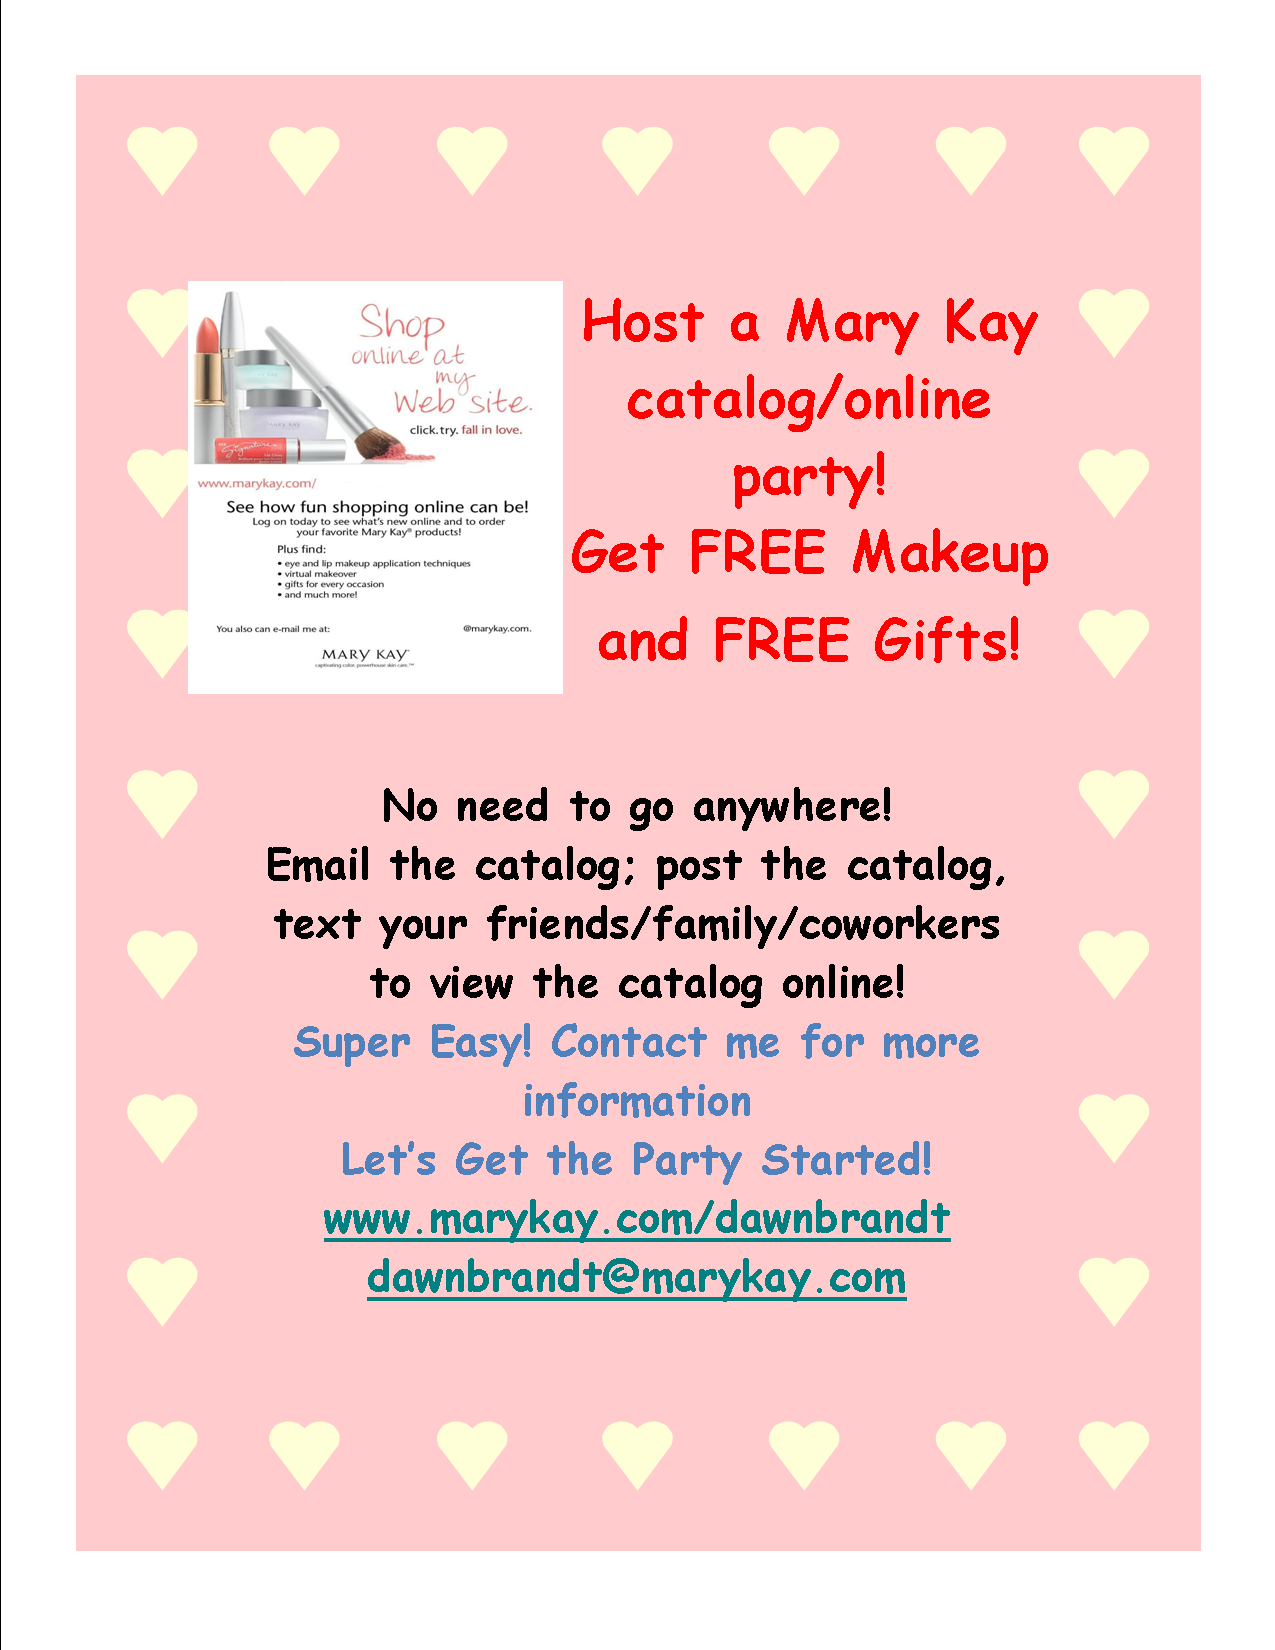 Host An Online Mary Kay Party Super Easy Let S Get You Free Some Free Makeup And Skin Care Products Cont Mary Kay Flyers Mary Kay Party Mary Kay Online Party